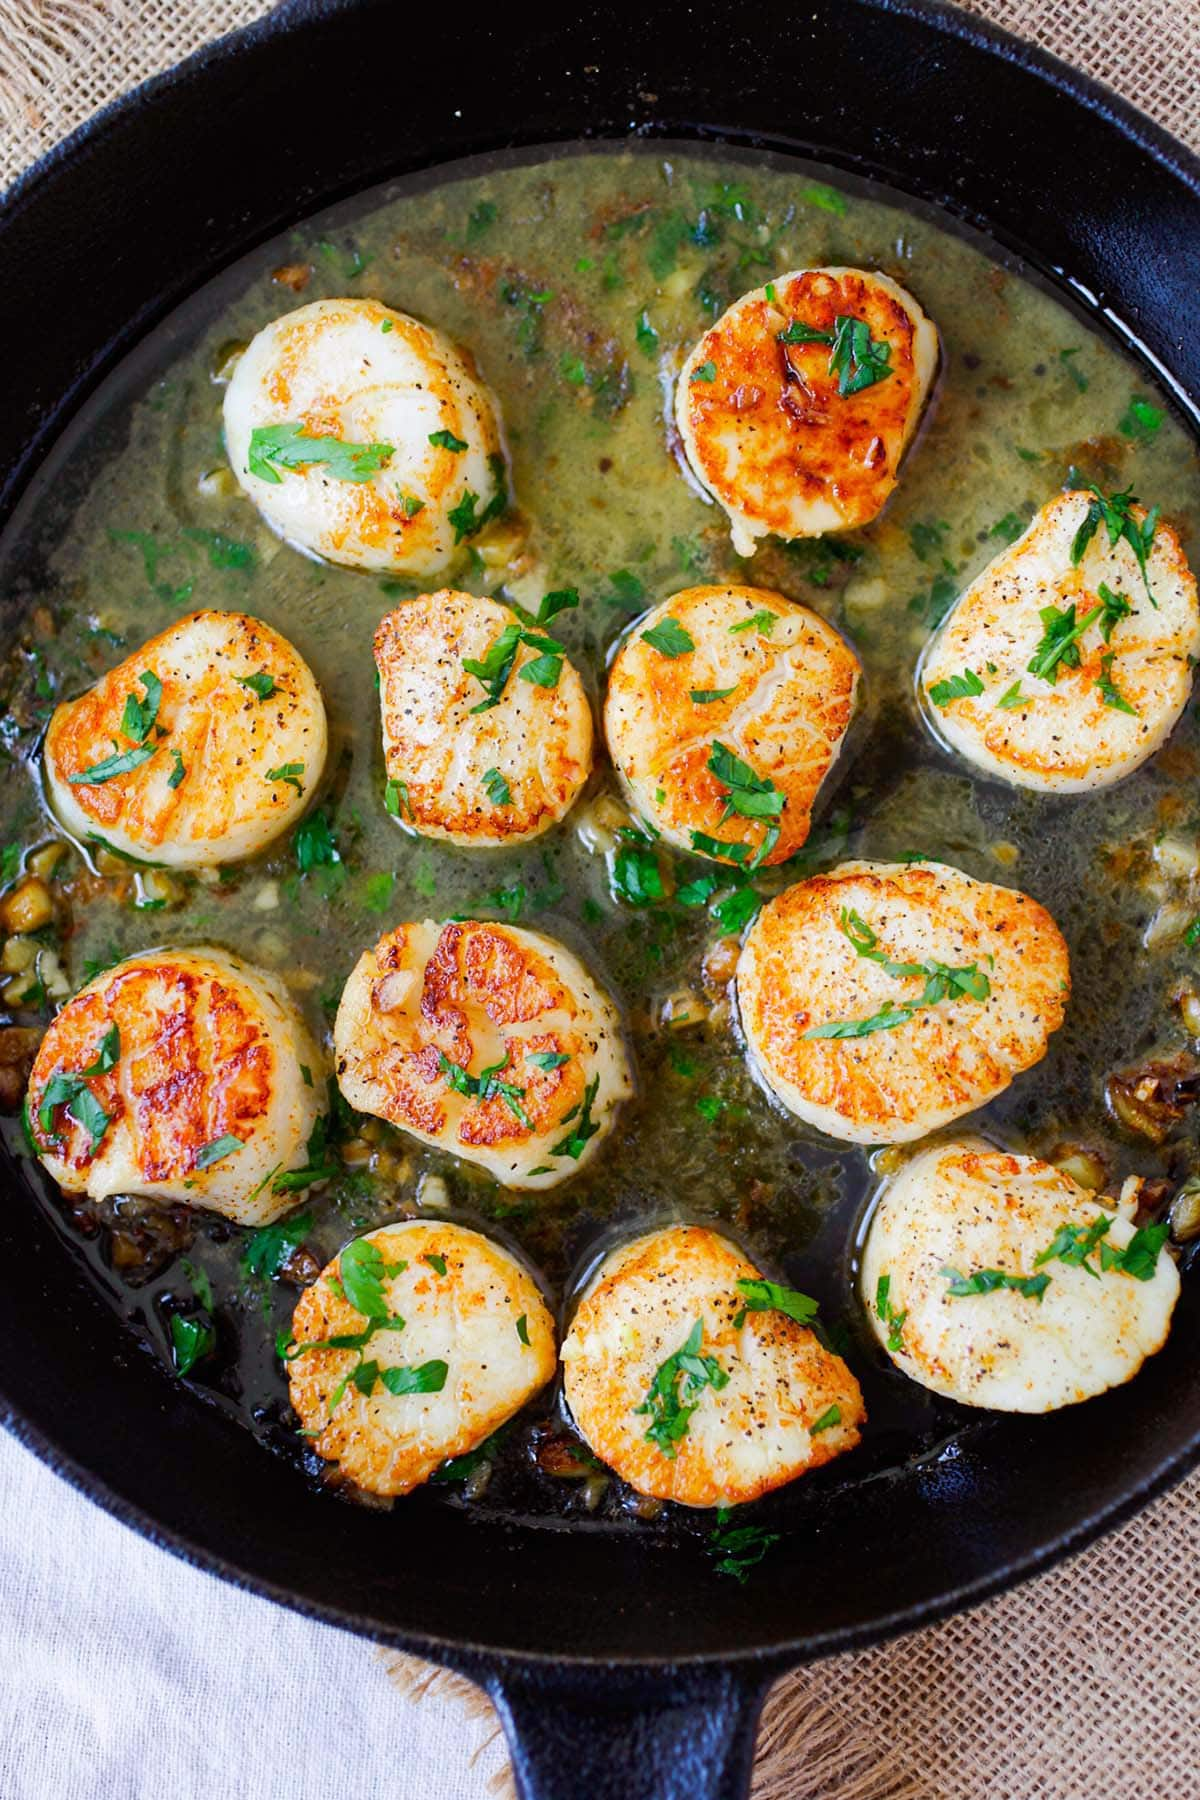 Sauteed scallops with garlic, butter, white wine and parsley.